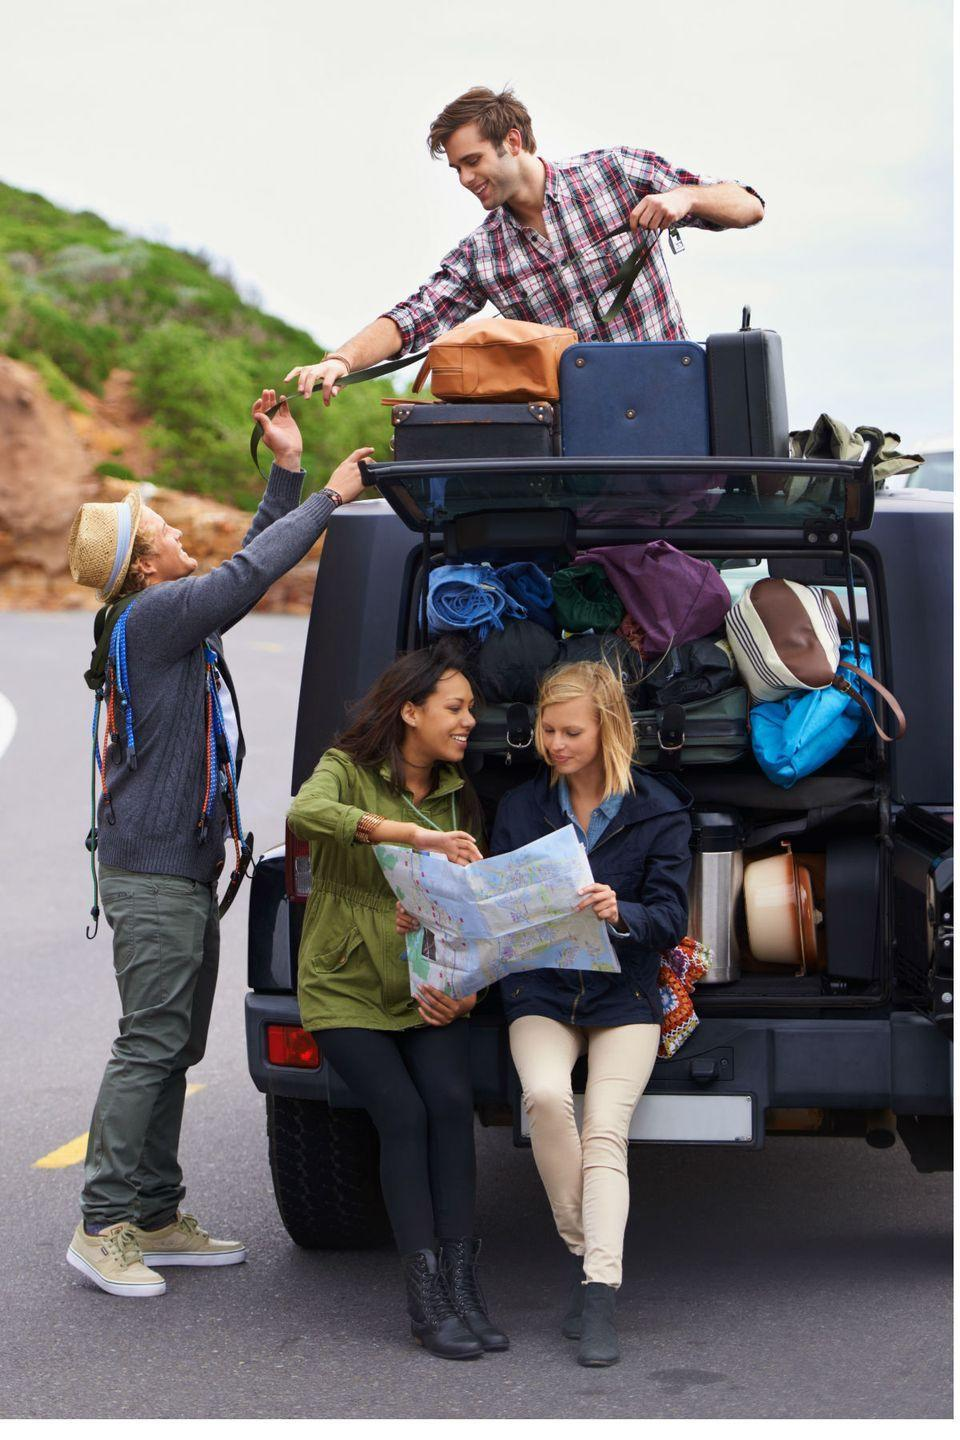 """<p>Summer is the perfect season to hit the road and explore. </p><p><strong>RELATED:</strong> <a href=""""https://www.countryliving.com/life/travel/a35944/one-tank-road-trips/"""" rel=""""nofollow noopener"""" target=""""_blank"""" data-ylk=""""slk:One-Tank Road Trips from Around the Country"""" class=""""link rapid-noclick-resp"""">One-Tank Road Trips from Around the Country</a></p>"""